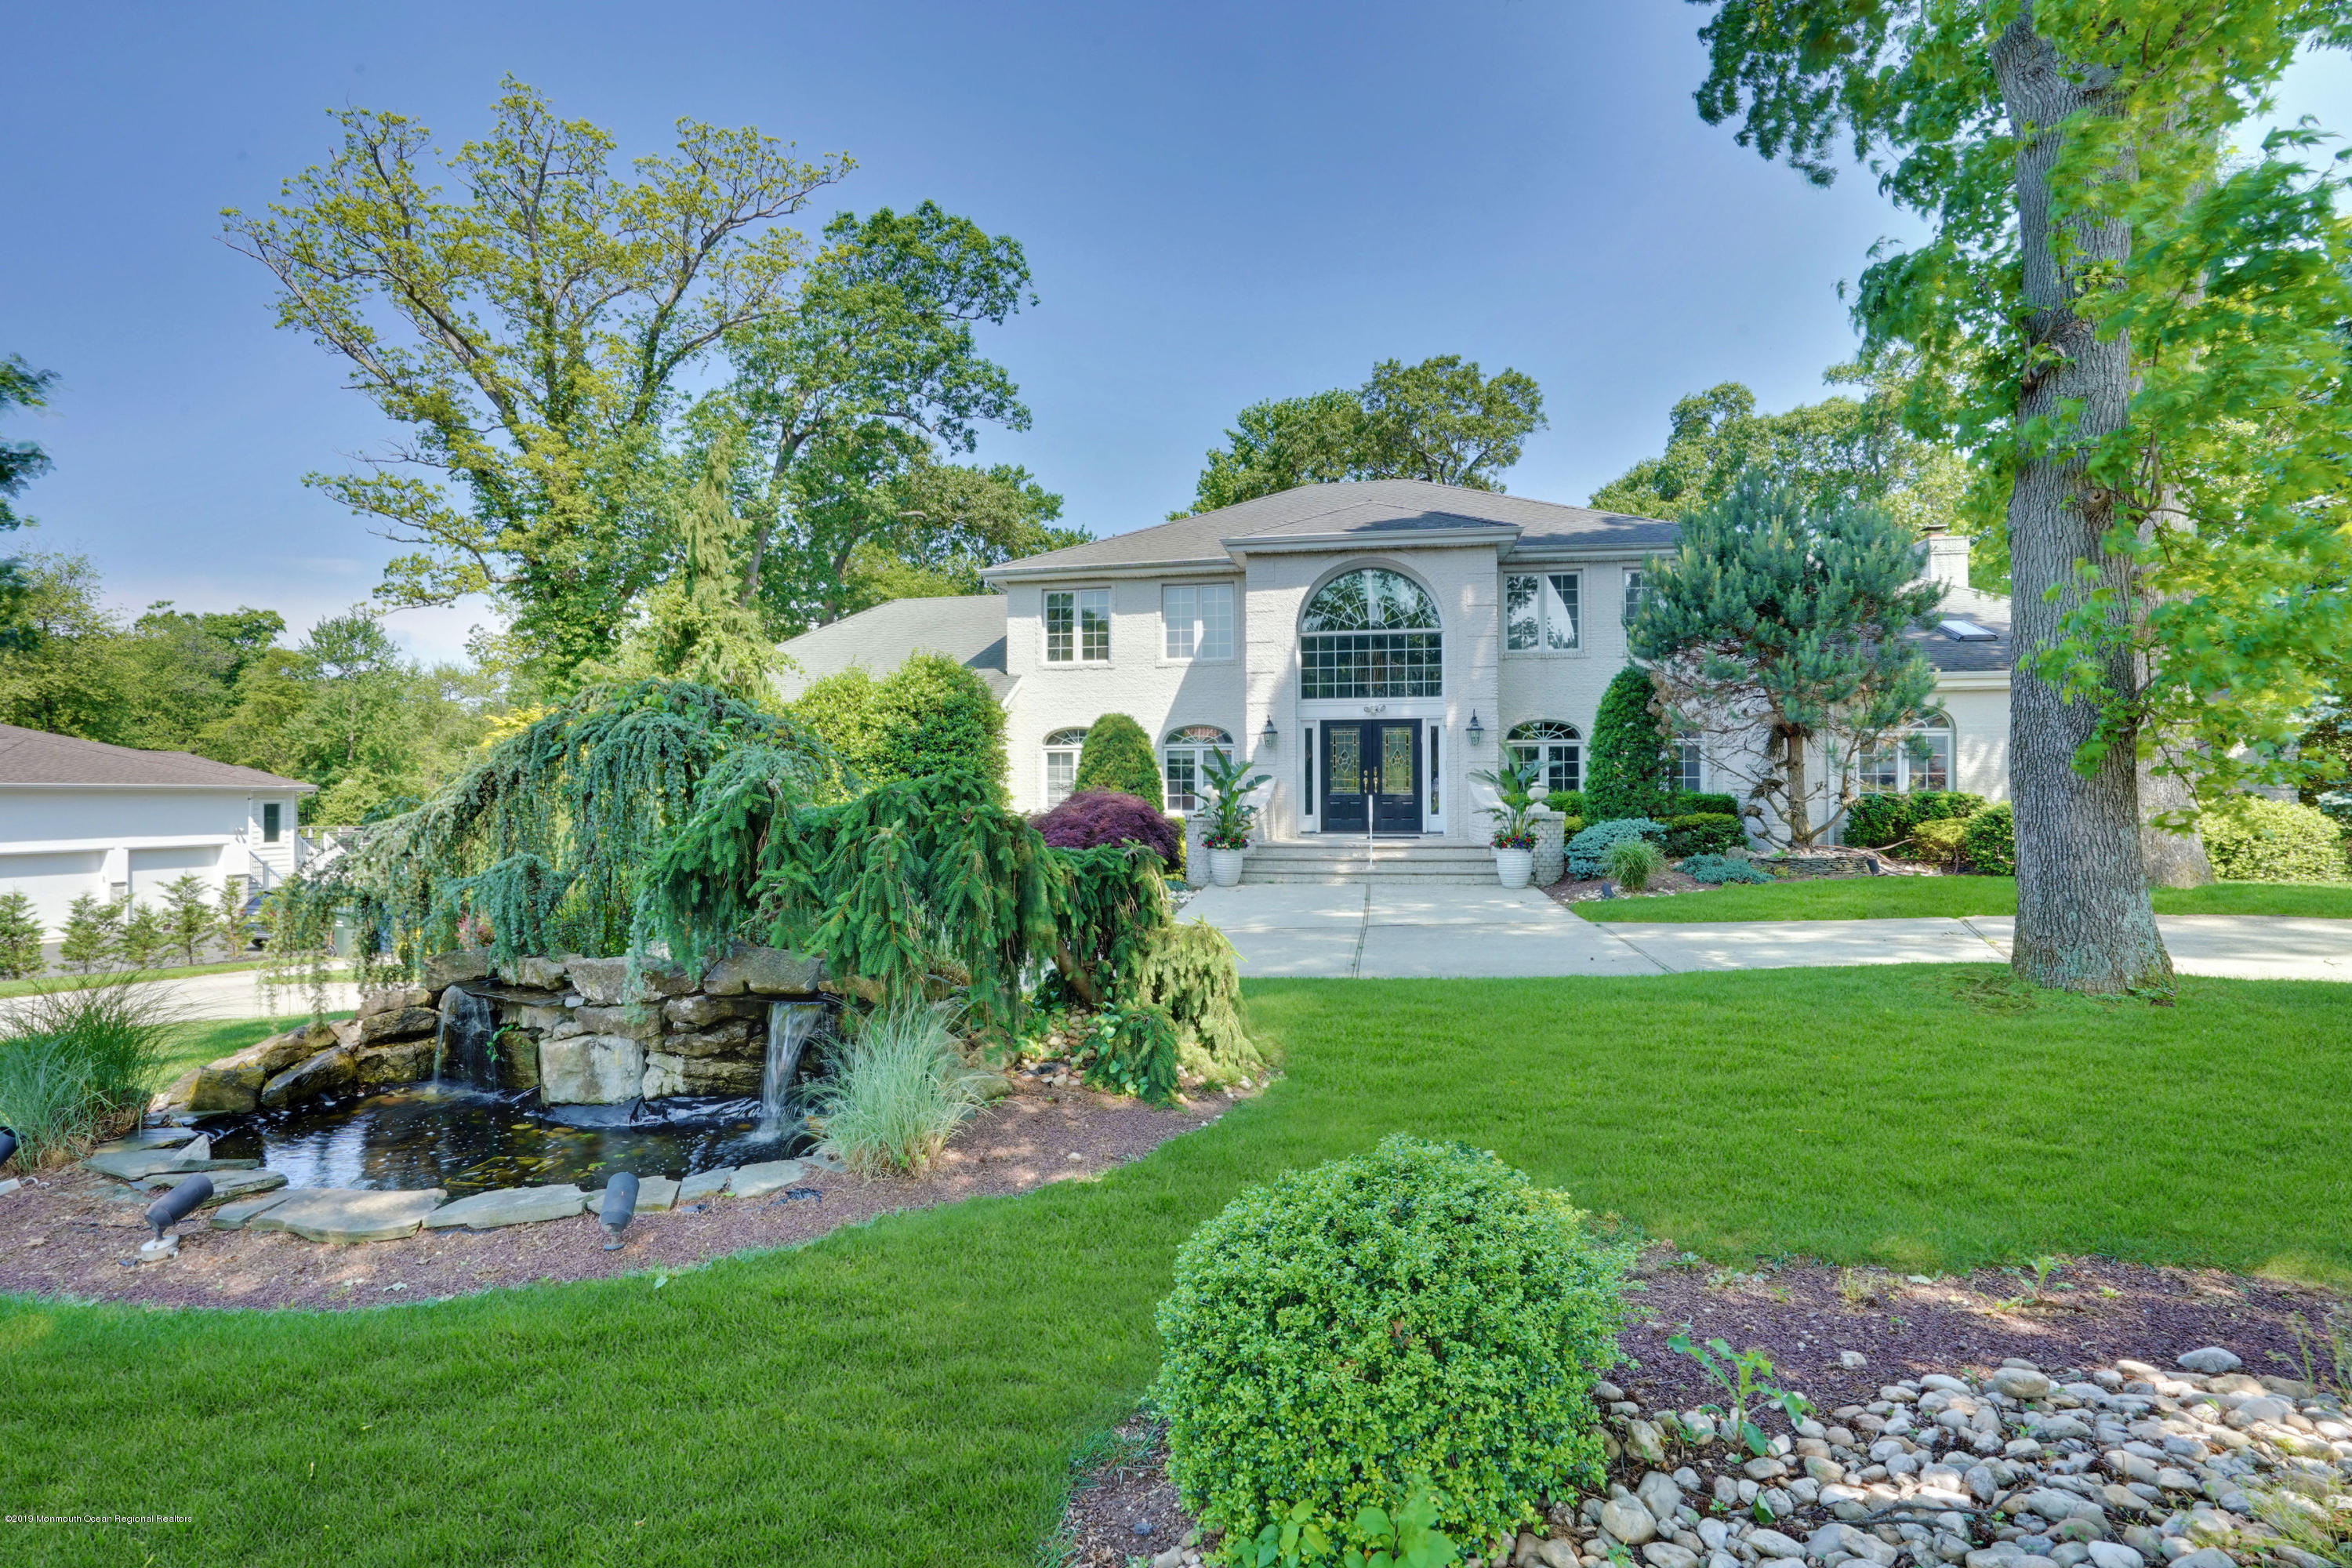 Home for Sale at 1 Old Farm Road in Oakhurst, NJ for